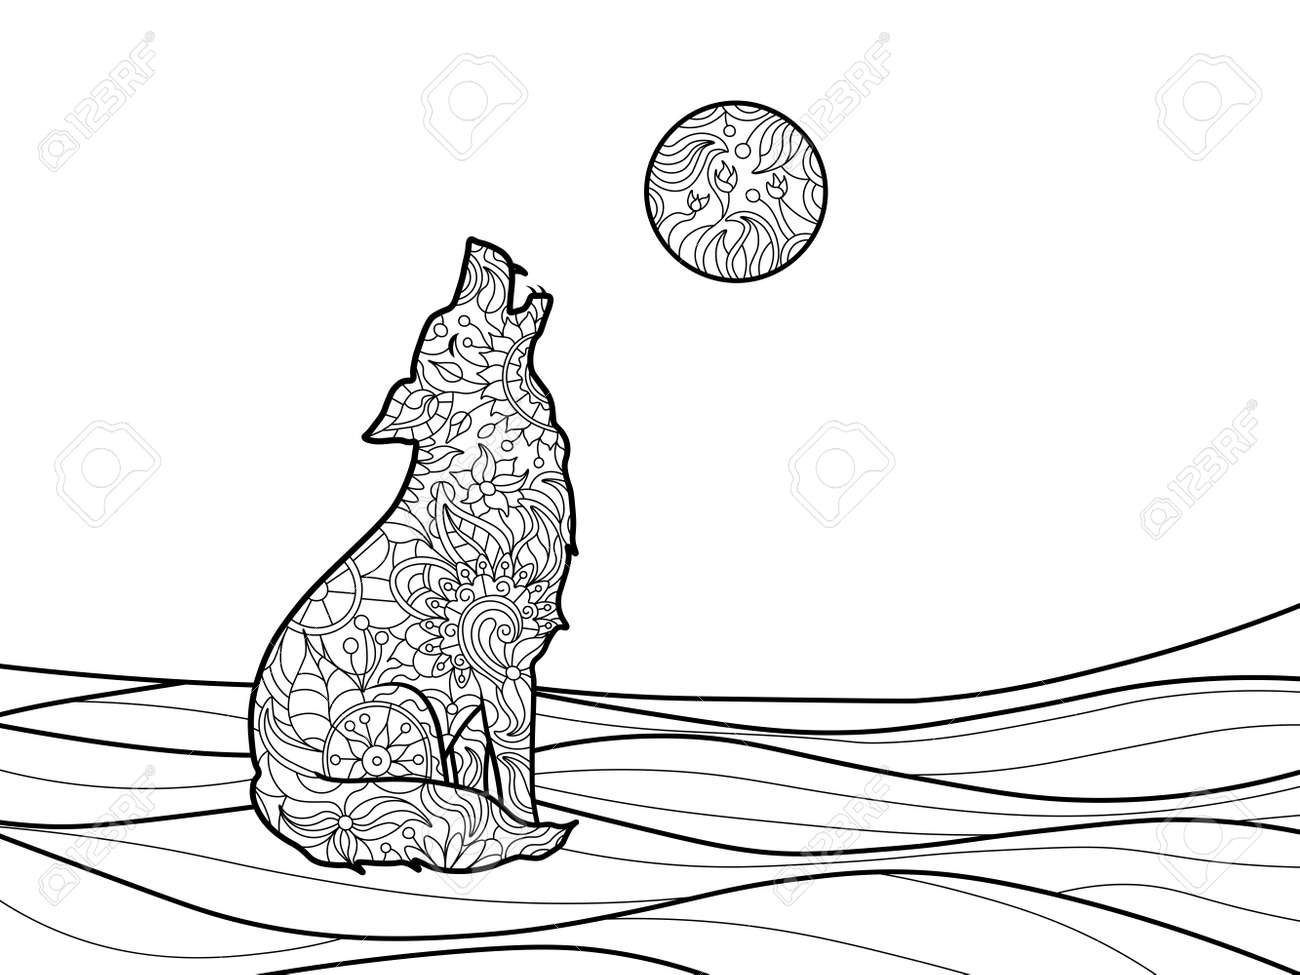 Wolf coloring book for adults vector illustration.